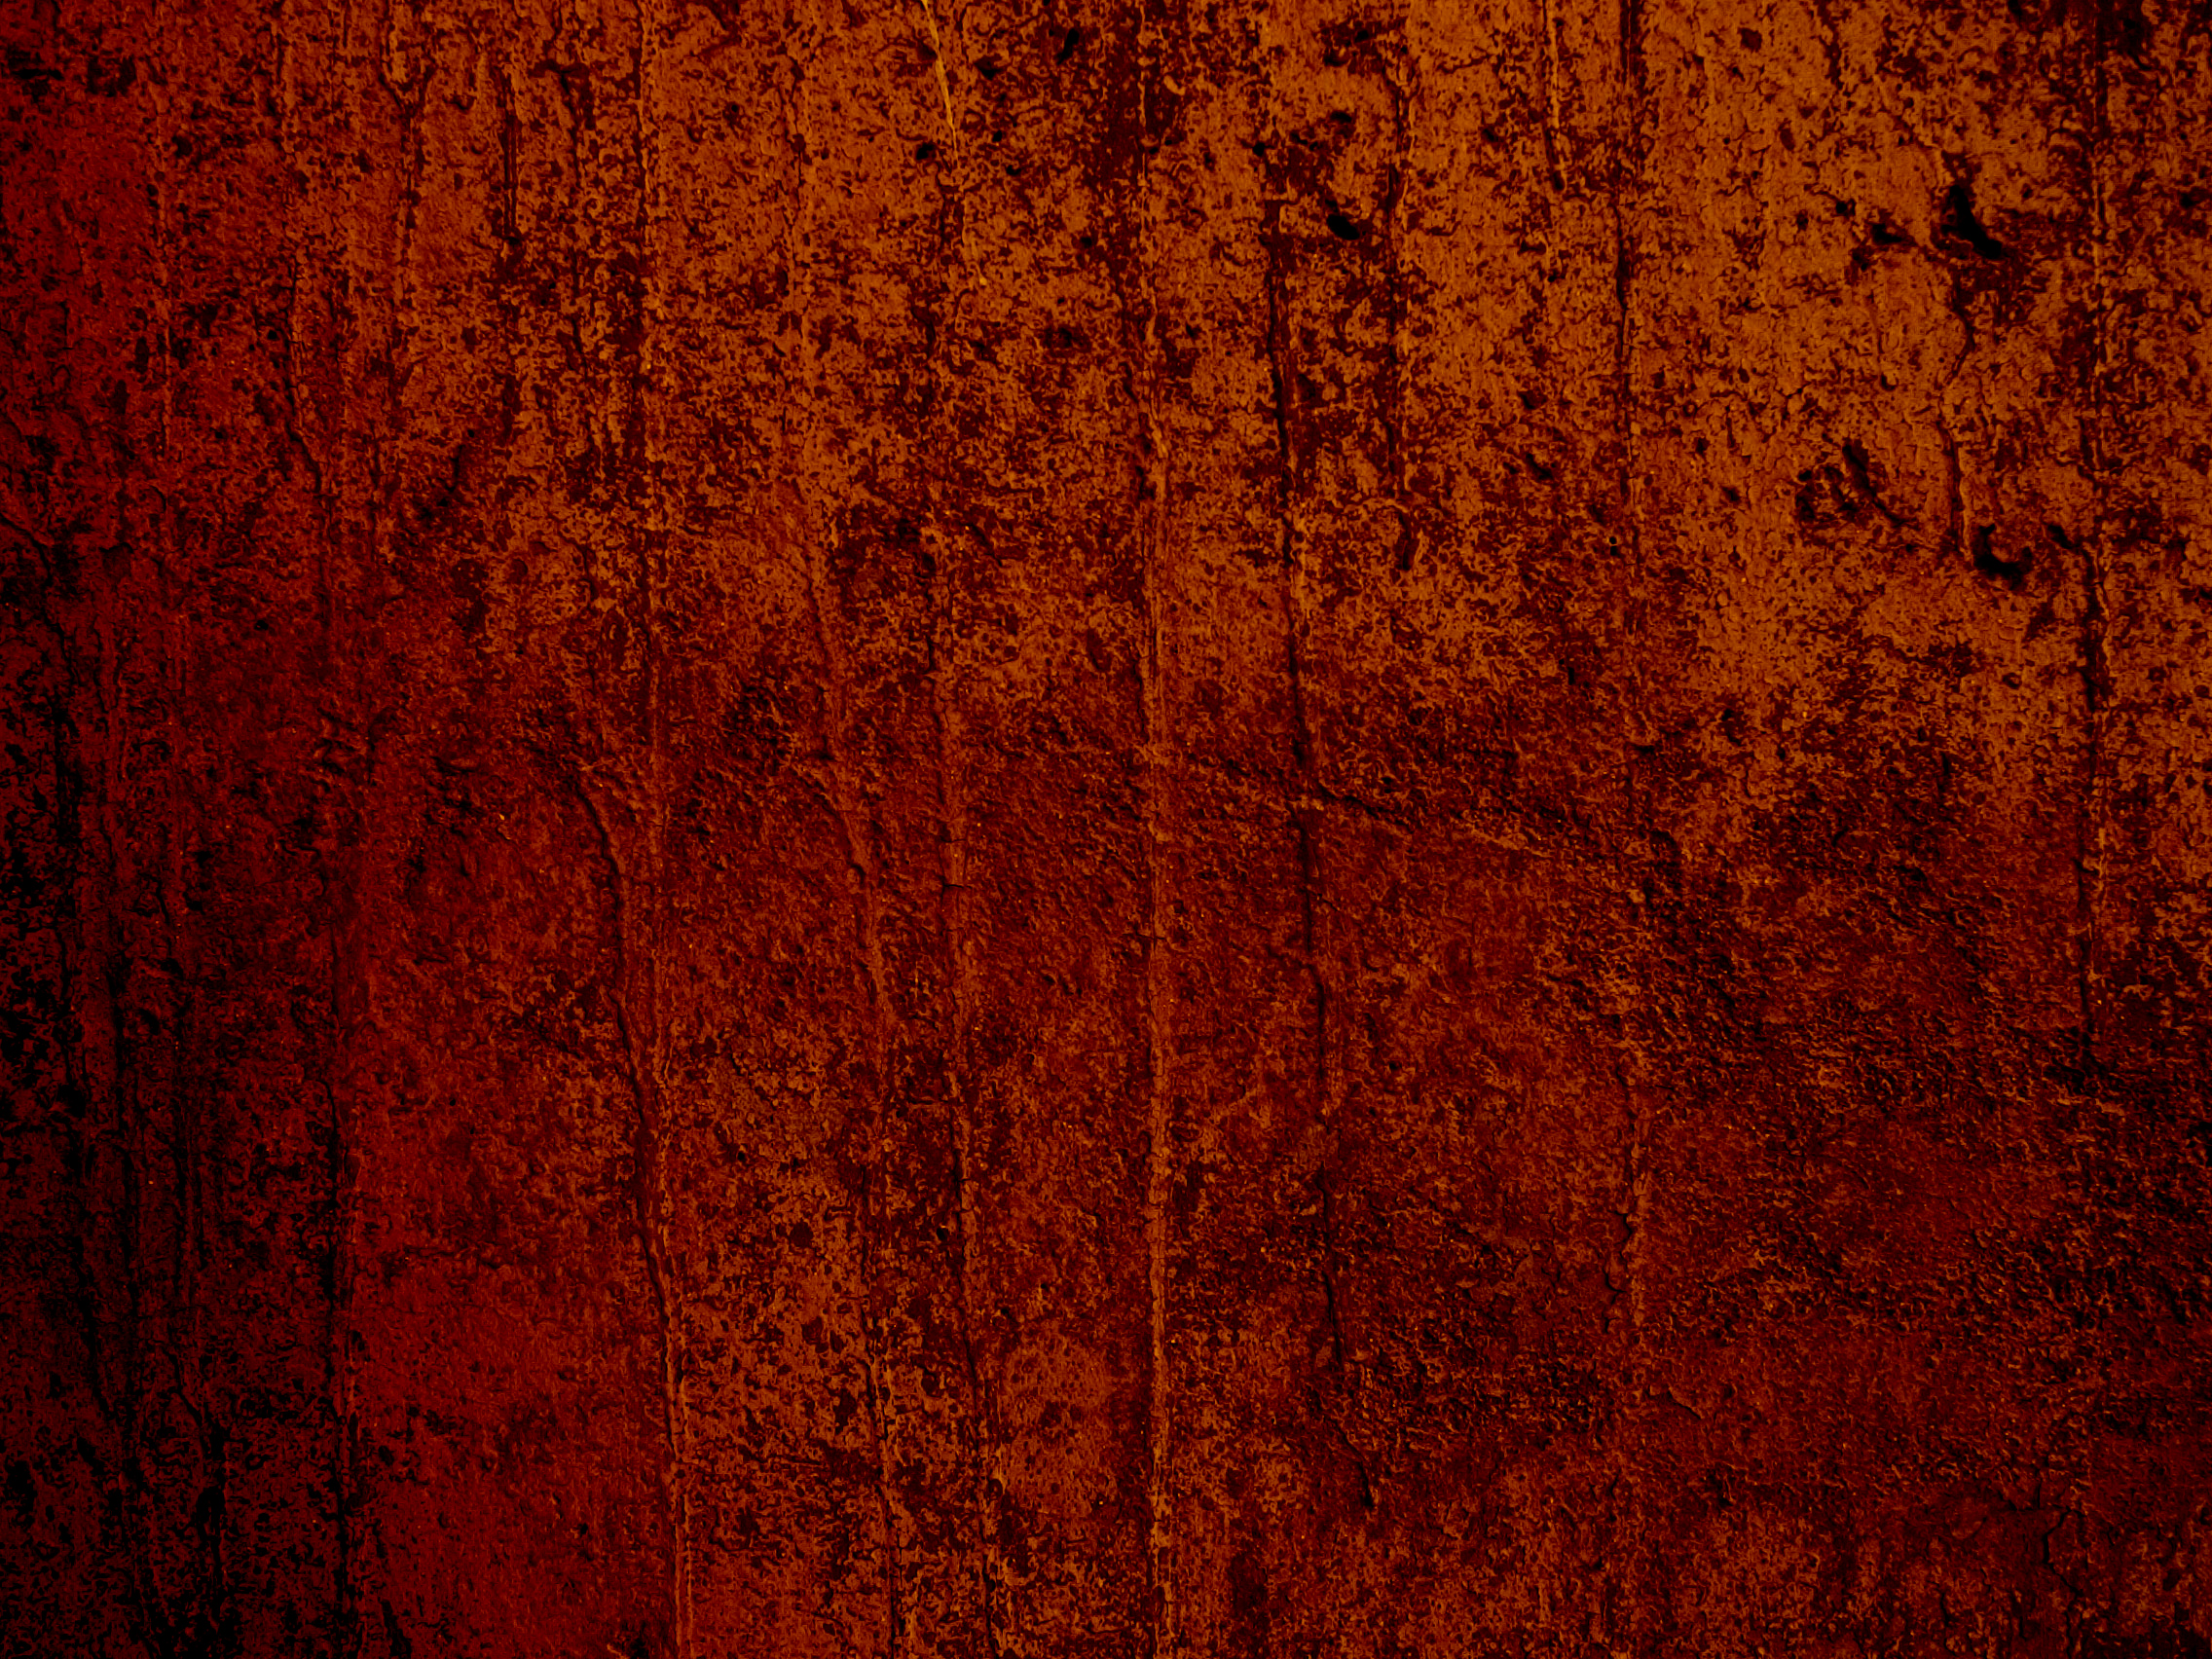 red textured backgrounds - photo #46